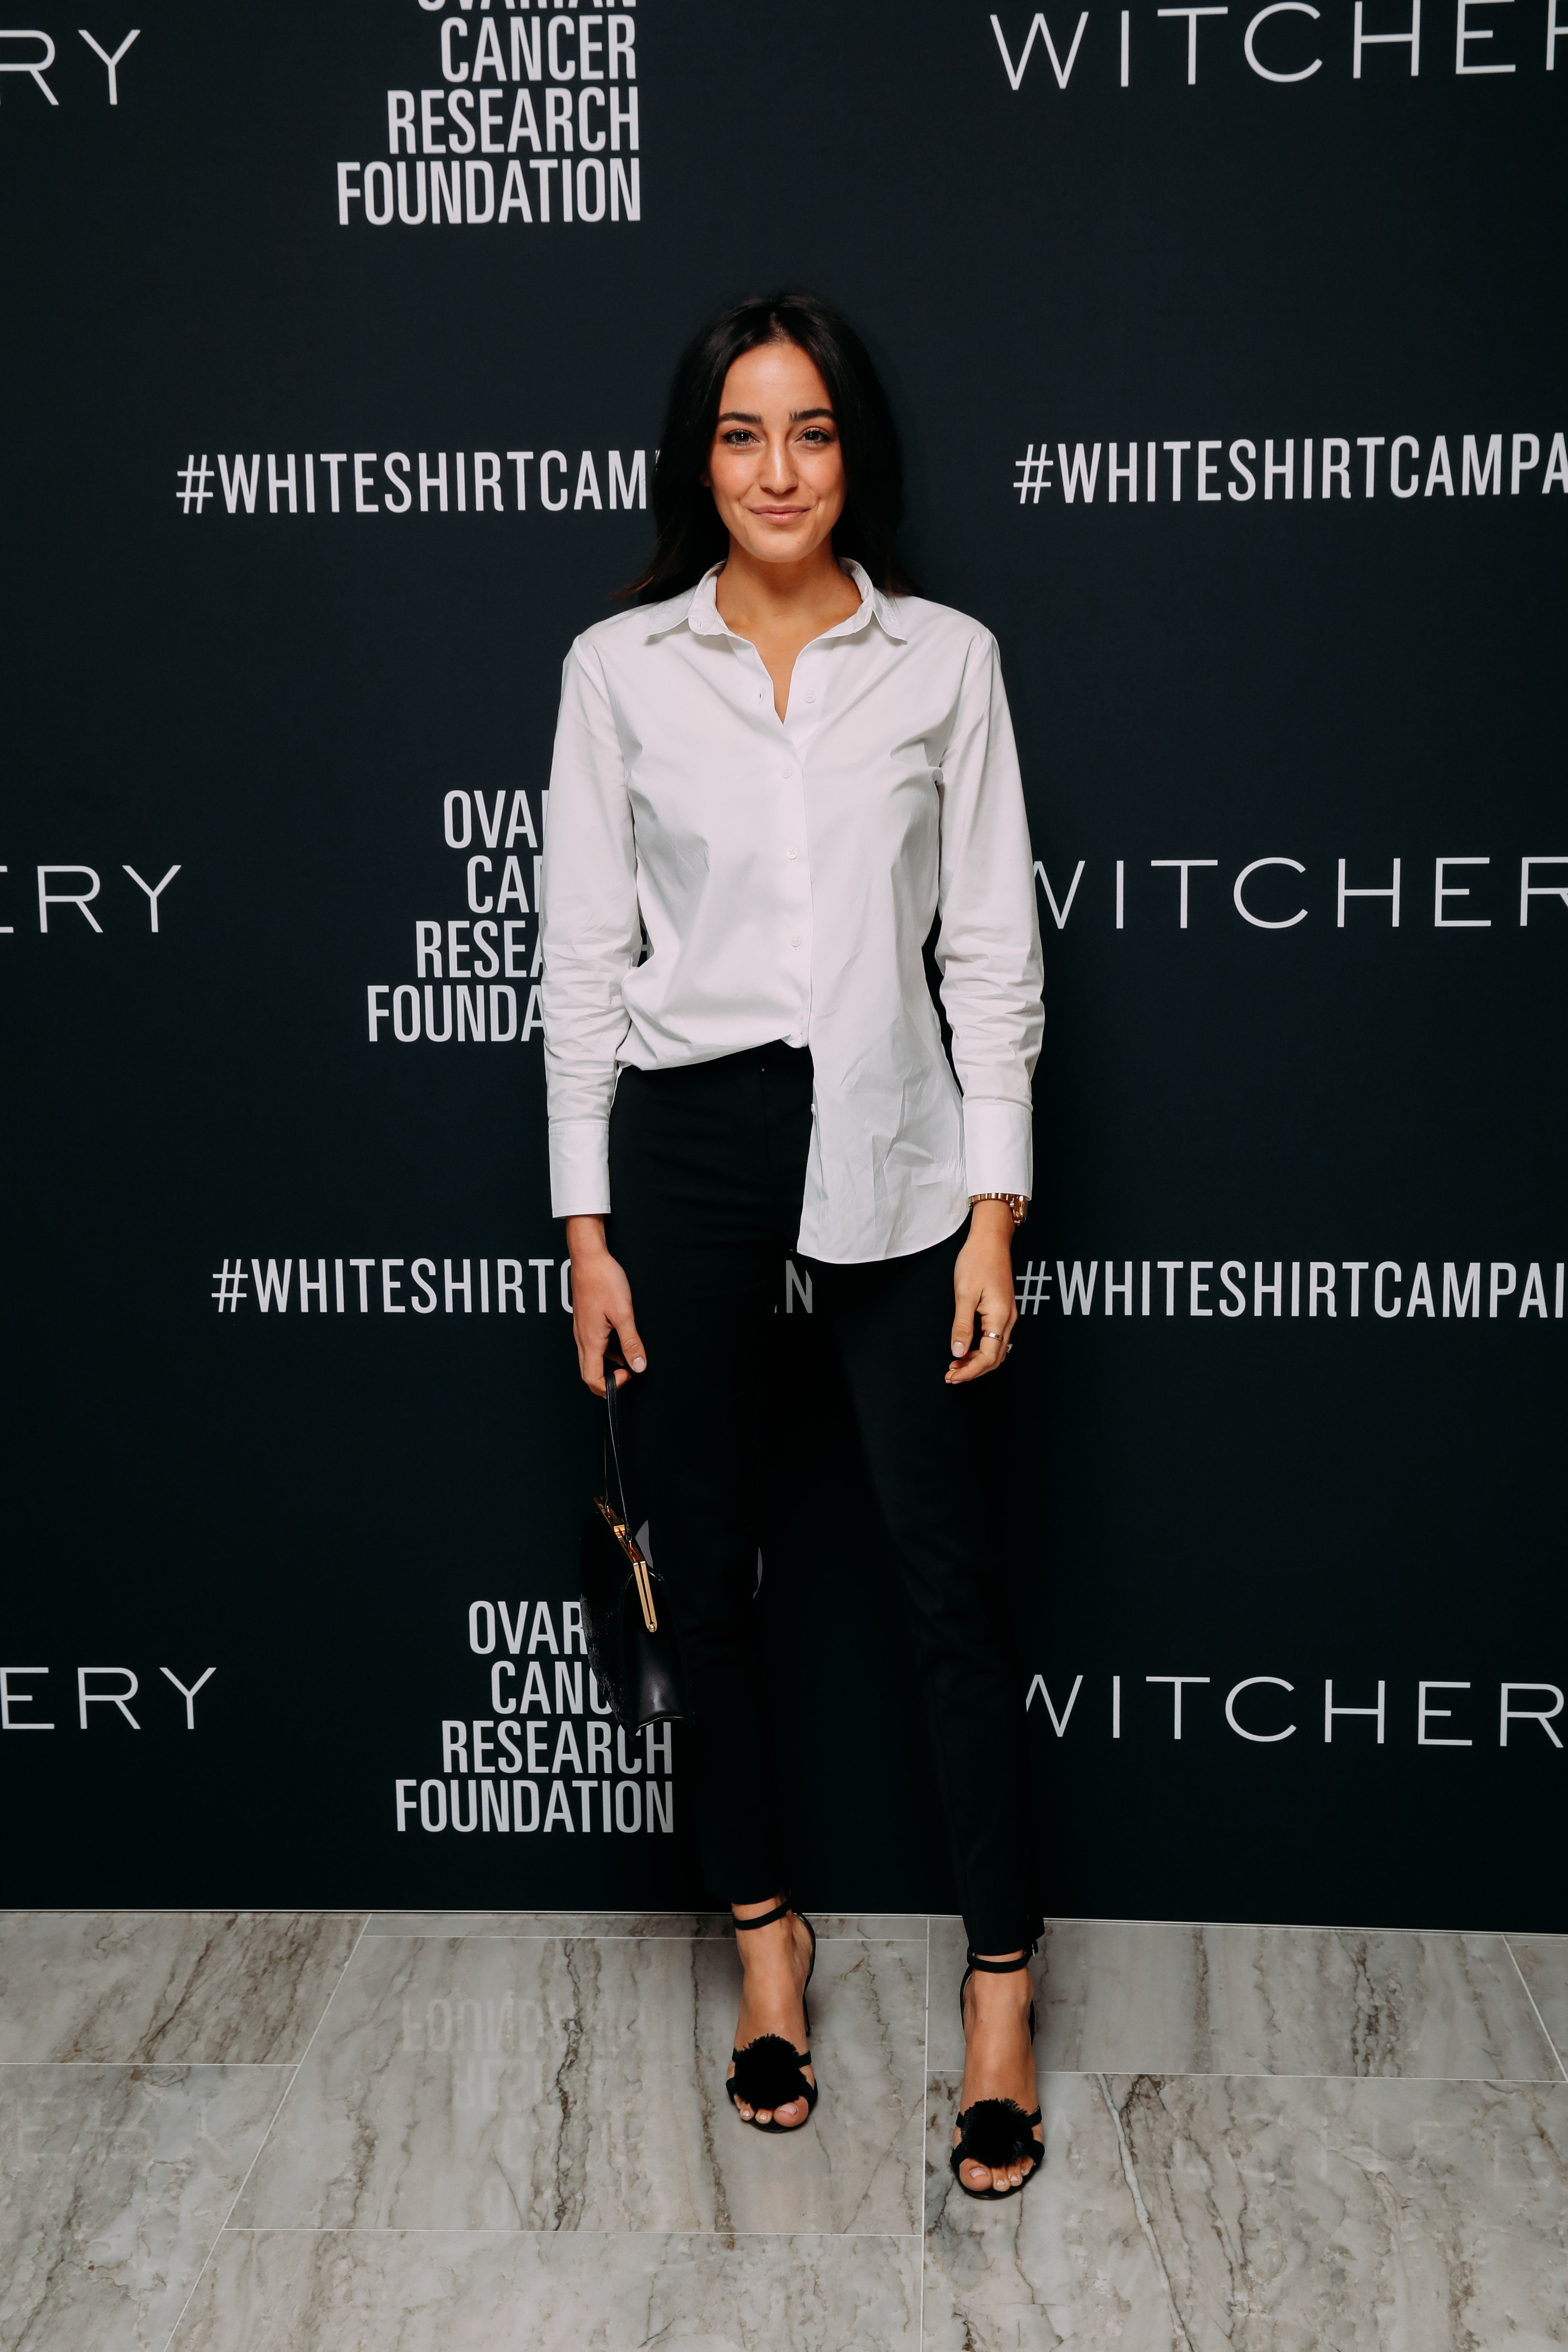 Abbey Gelmi at the 2019 Witchery White Shirt Campaign Launch